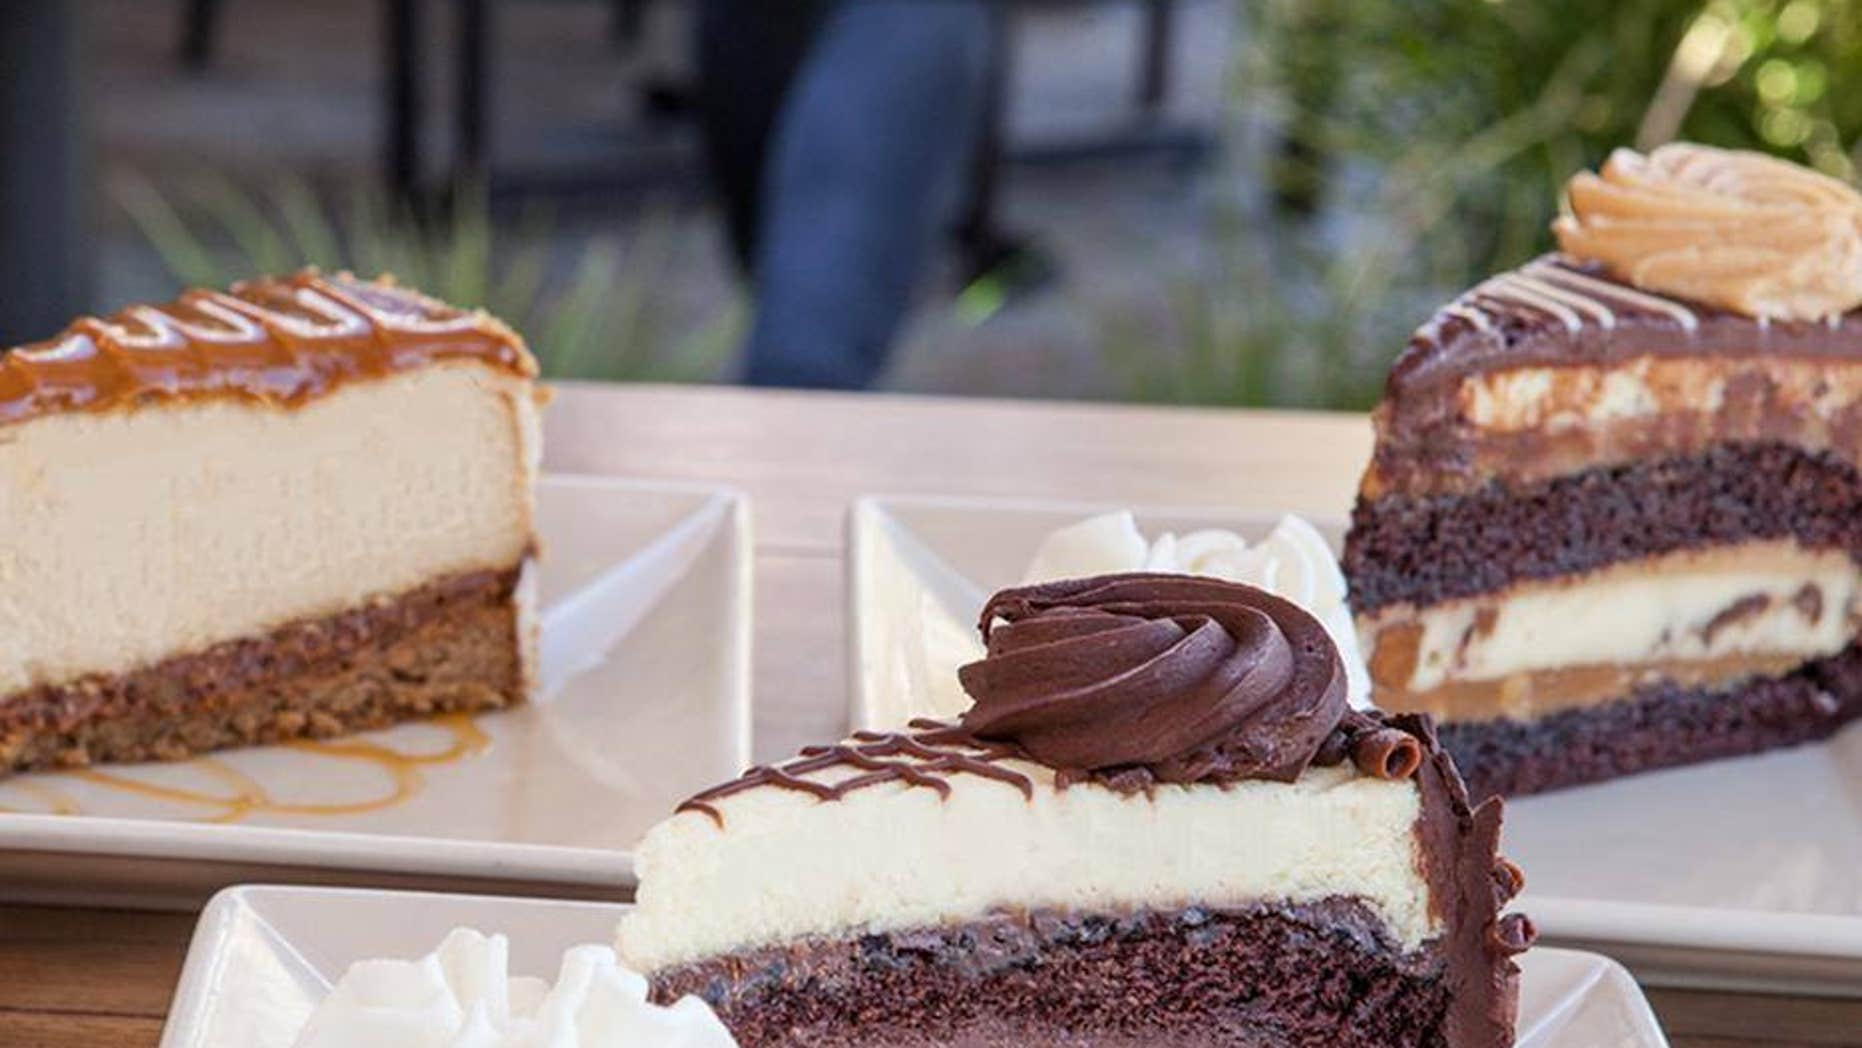 The Cheesecake Factory is so much more than its desserts. But with 70 rotating varieties of creamy cakes, it doesn't hurt.